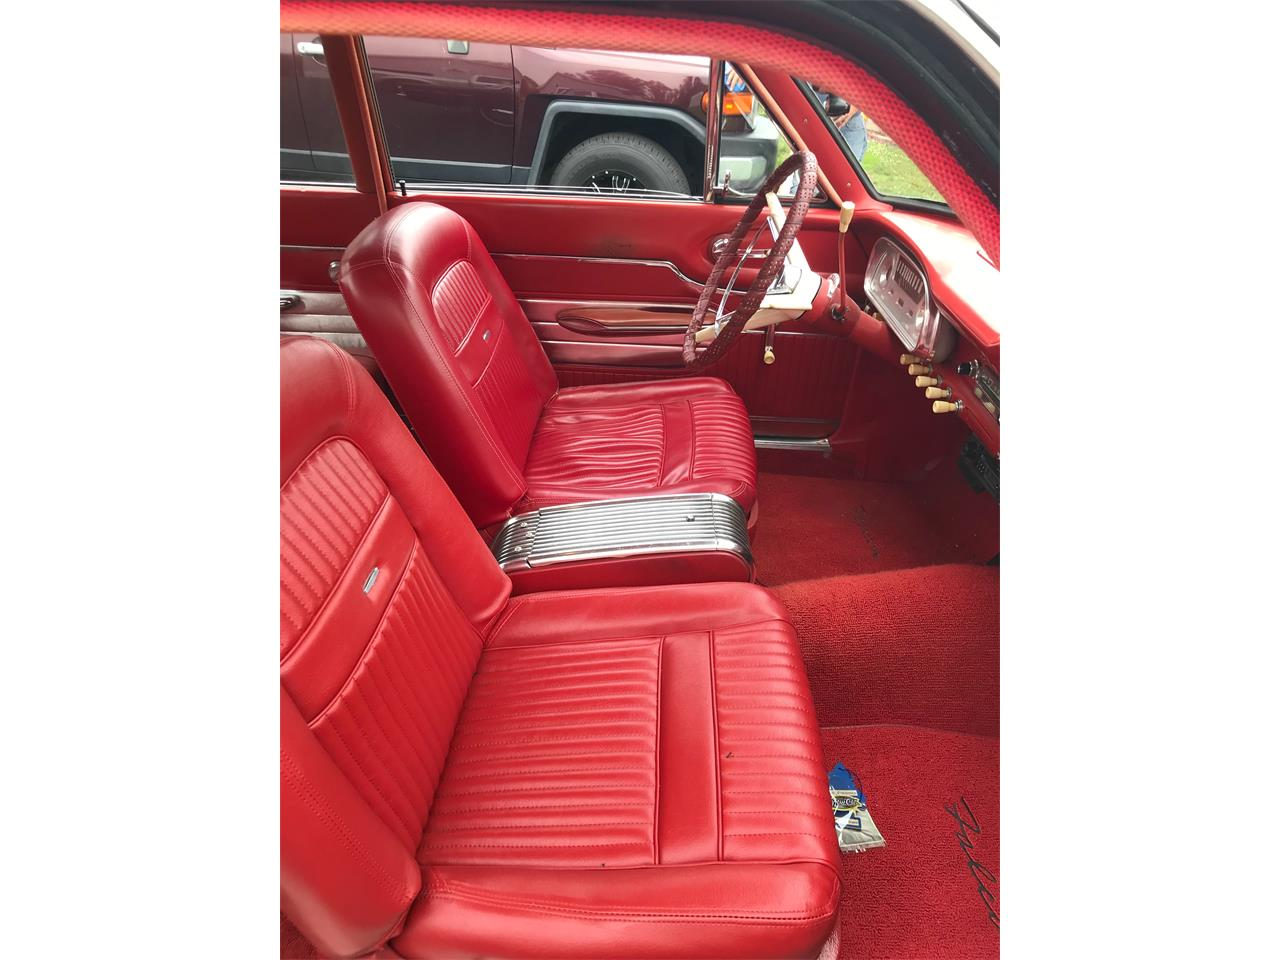 1961 Ford Falcon (CC-1268437) for sale in Mddletown, Delaware